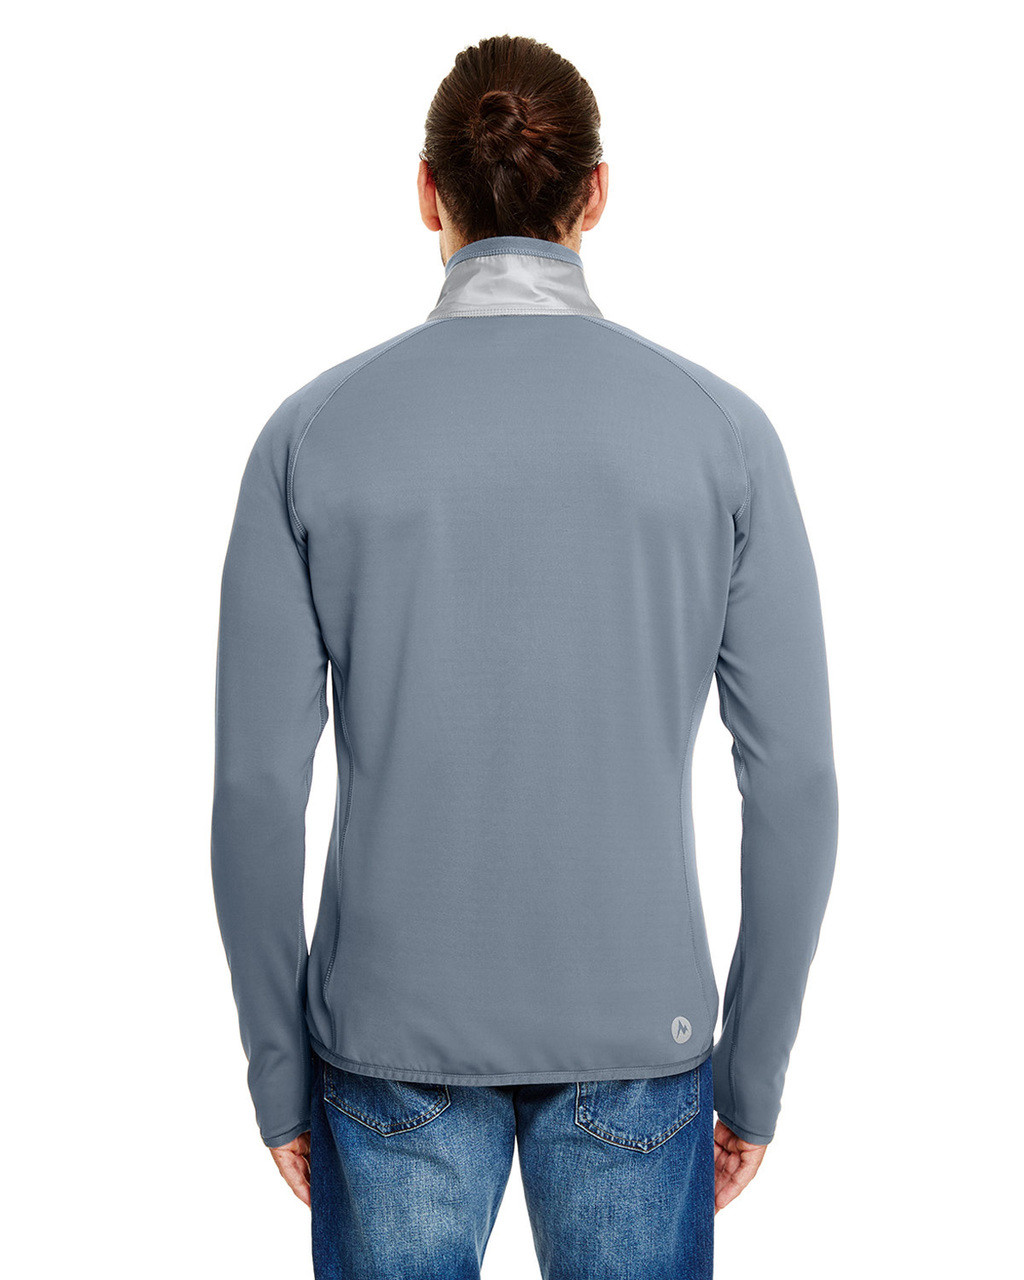 Grey Storm, Back - 900287 Marmot Men's Variant Jacket | BlankClothing.ca